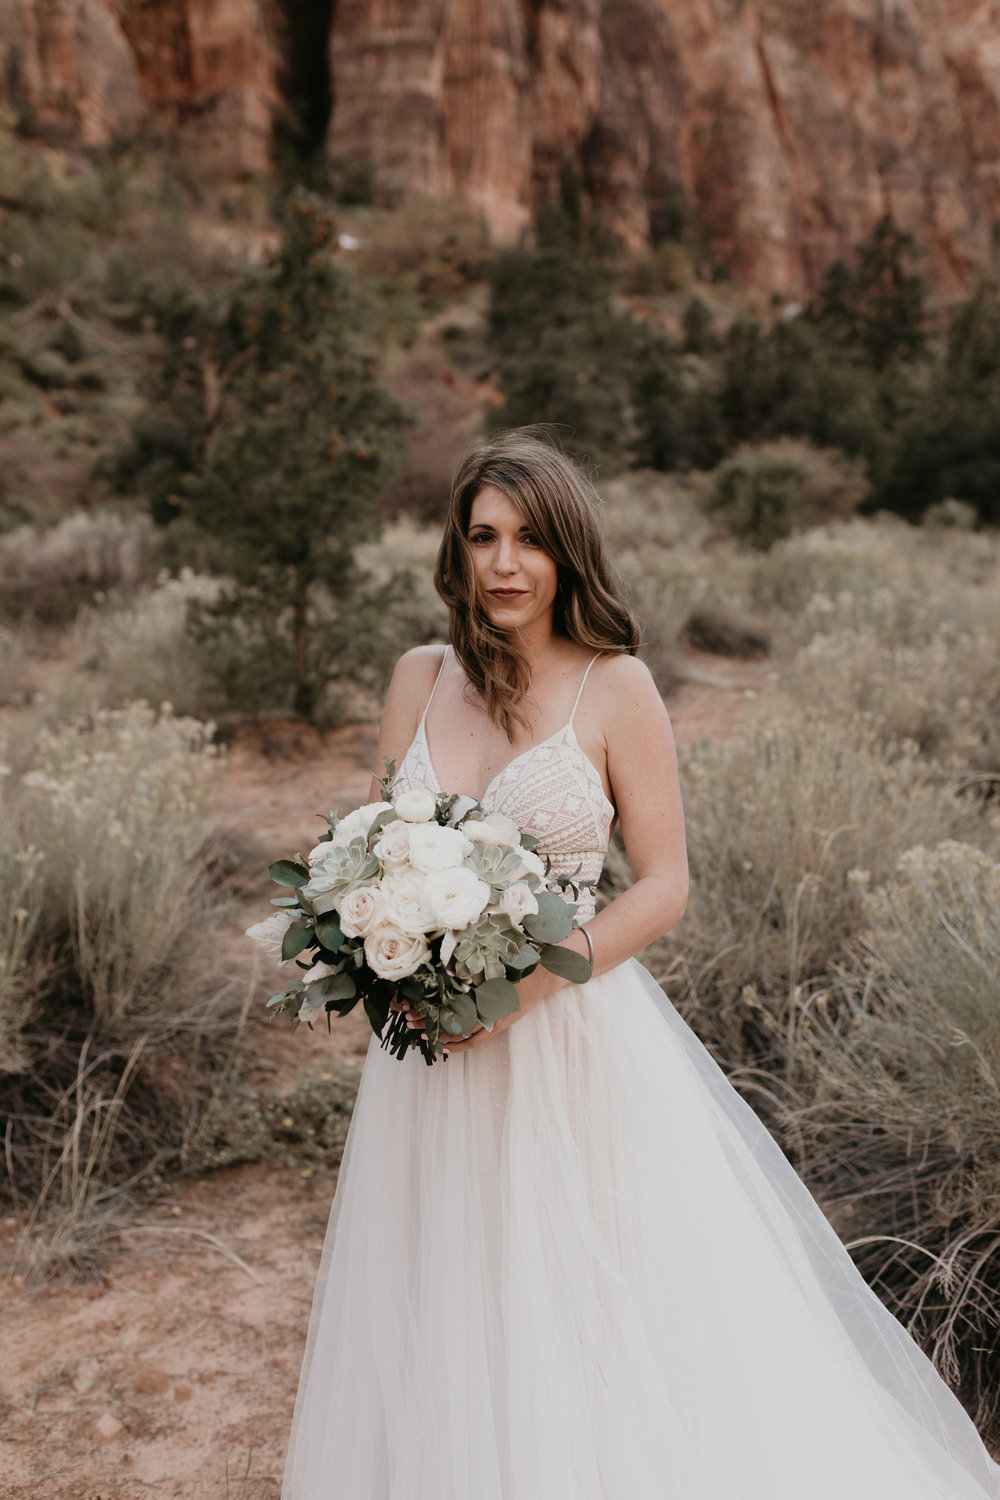 nicole-daacke-photography-zion-national-park-elopement-photographer-canyon-overlook-trail-elope-hiking-adventure-wedding-photos-fall-utah-red-rock-canyon-stgeorge-eloping-photographer-14.jpg